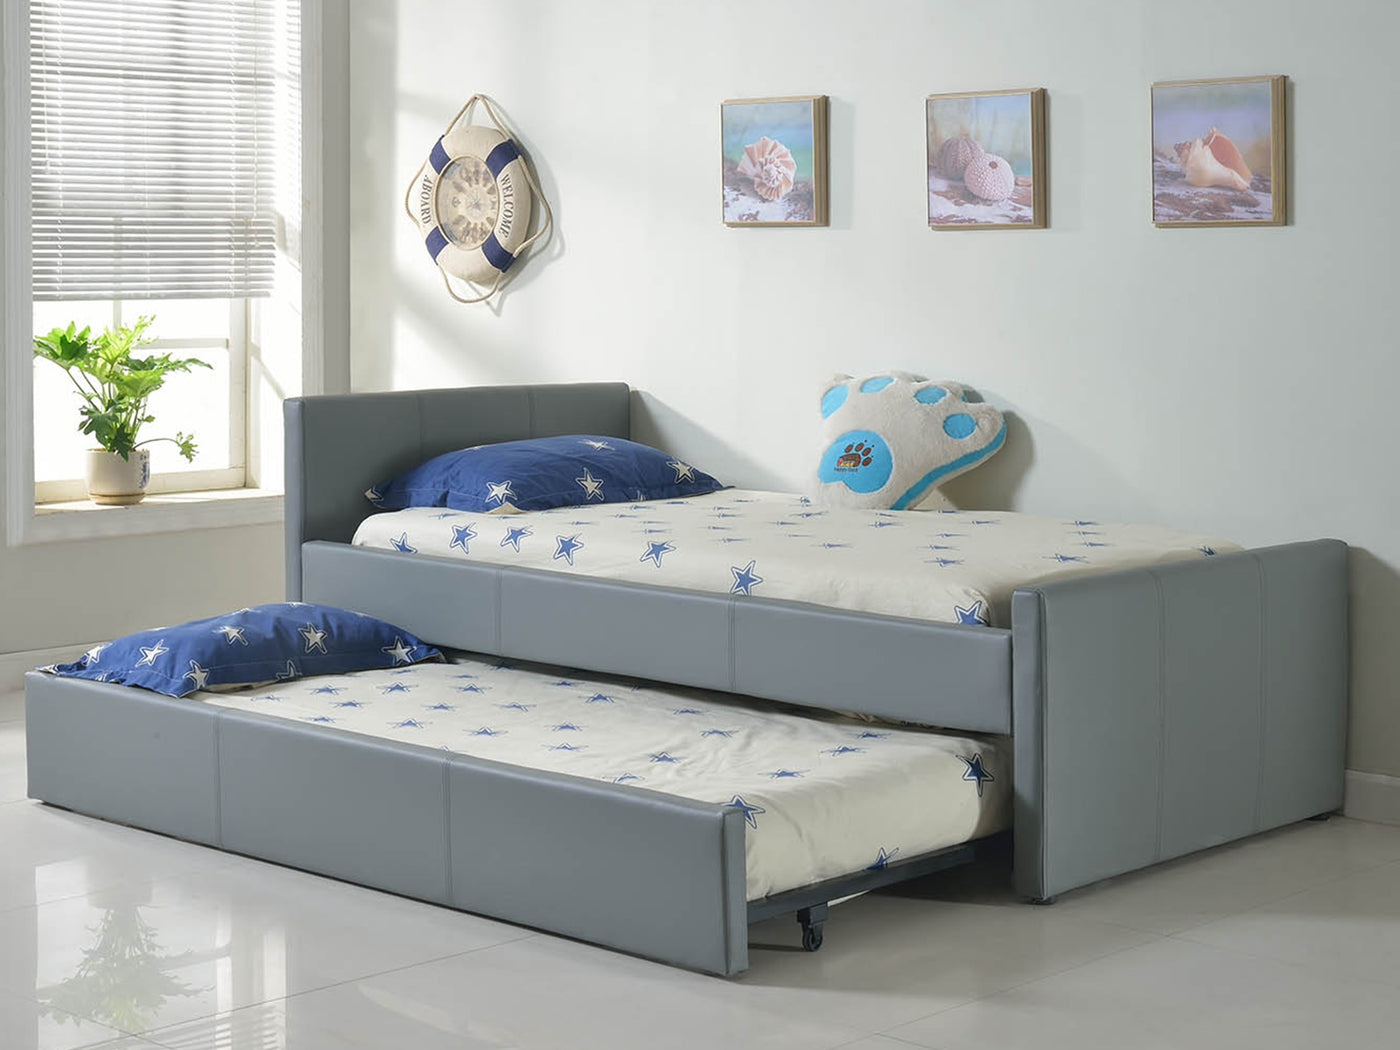 Picture of: Casabianca Duette Gray Eco Leather Twin Bed Cb 14bdg Xltwin Hipbeds Hipbeds Com